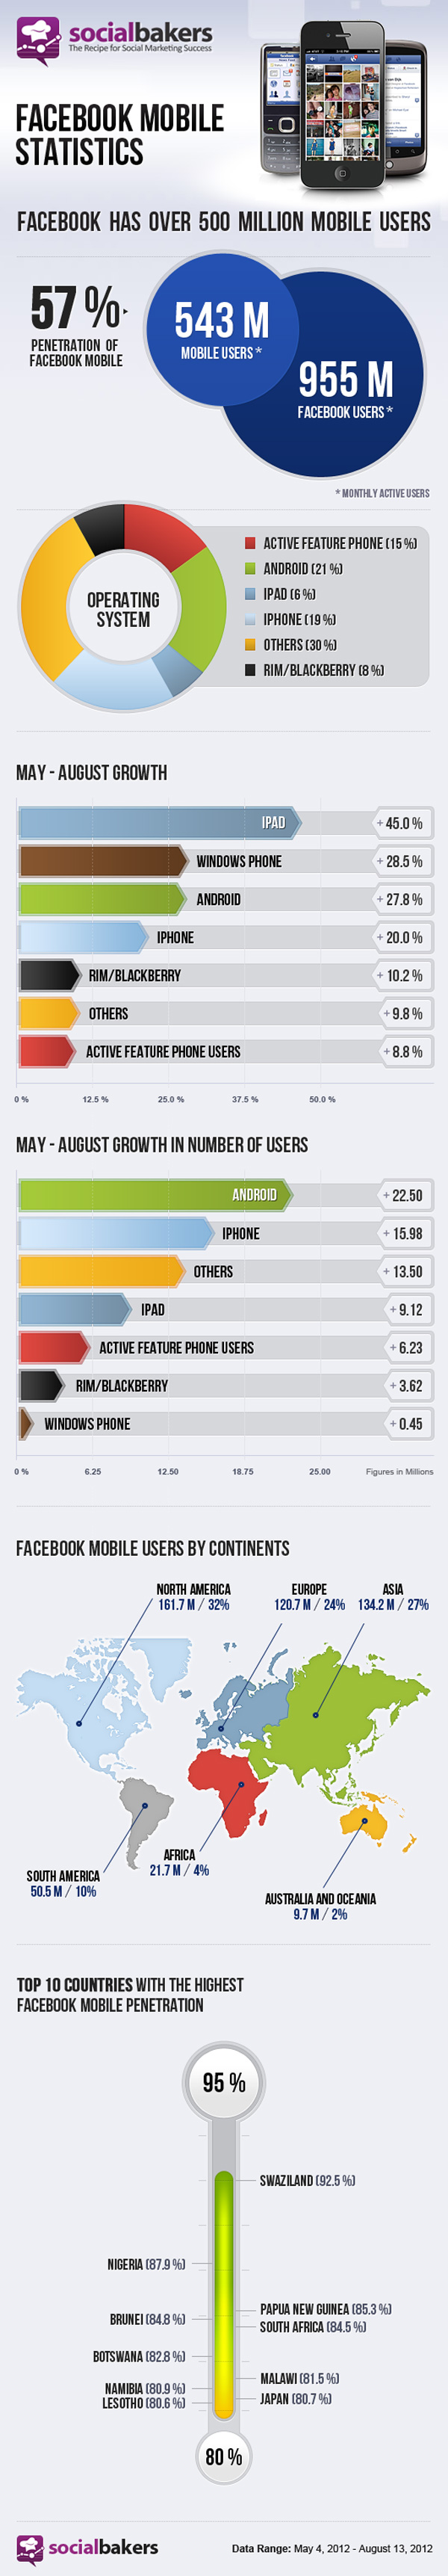 Facebook 543 million Mobile users